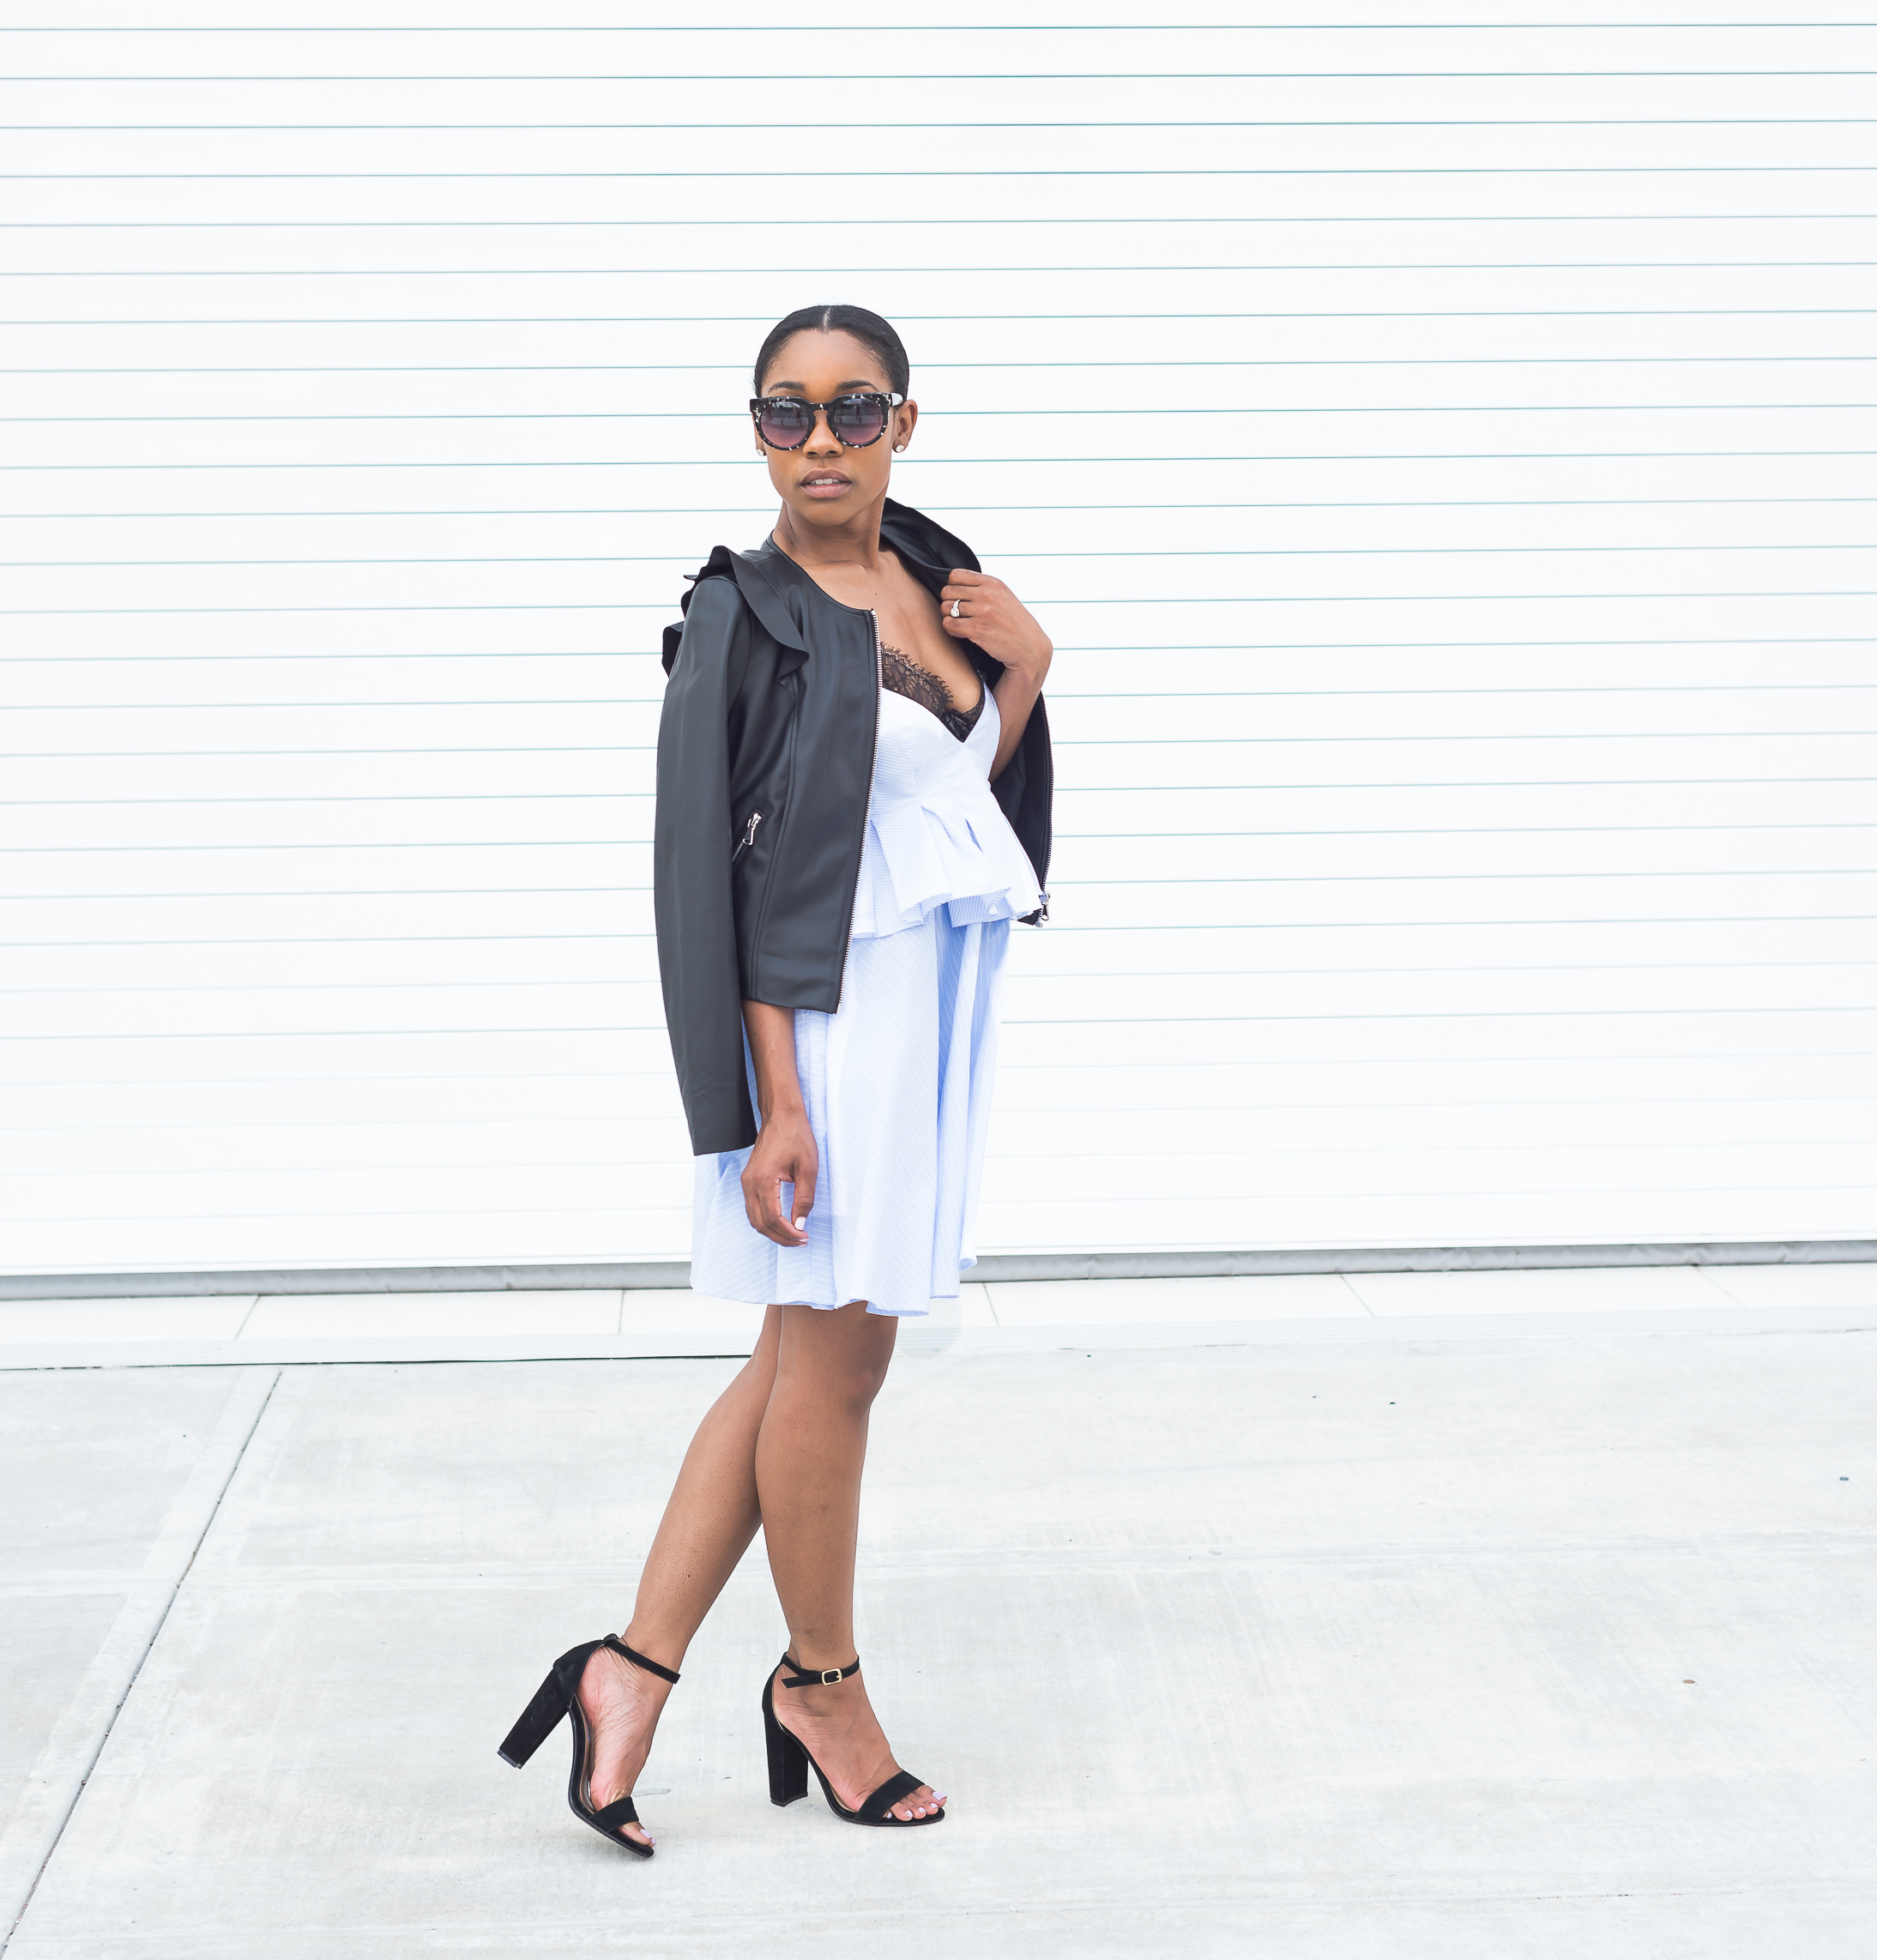 Zara Dress | Zara Jacket | Cos Bralette (40% similar style here) | Steve  Madden Shoes | Loft Sunnies